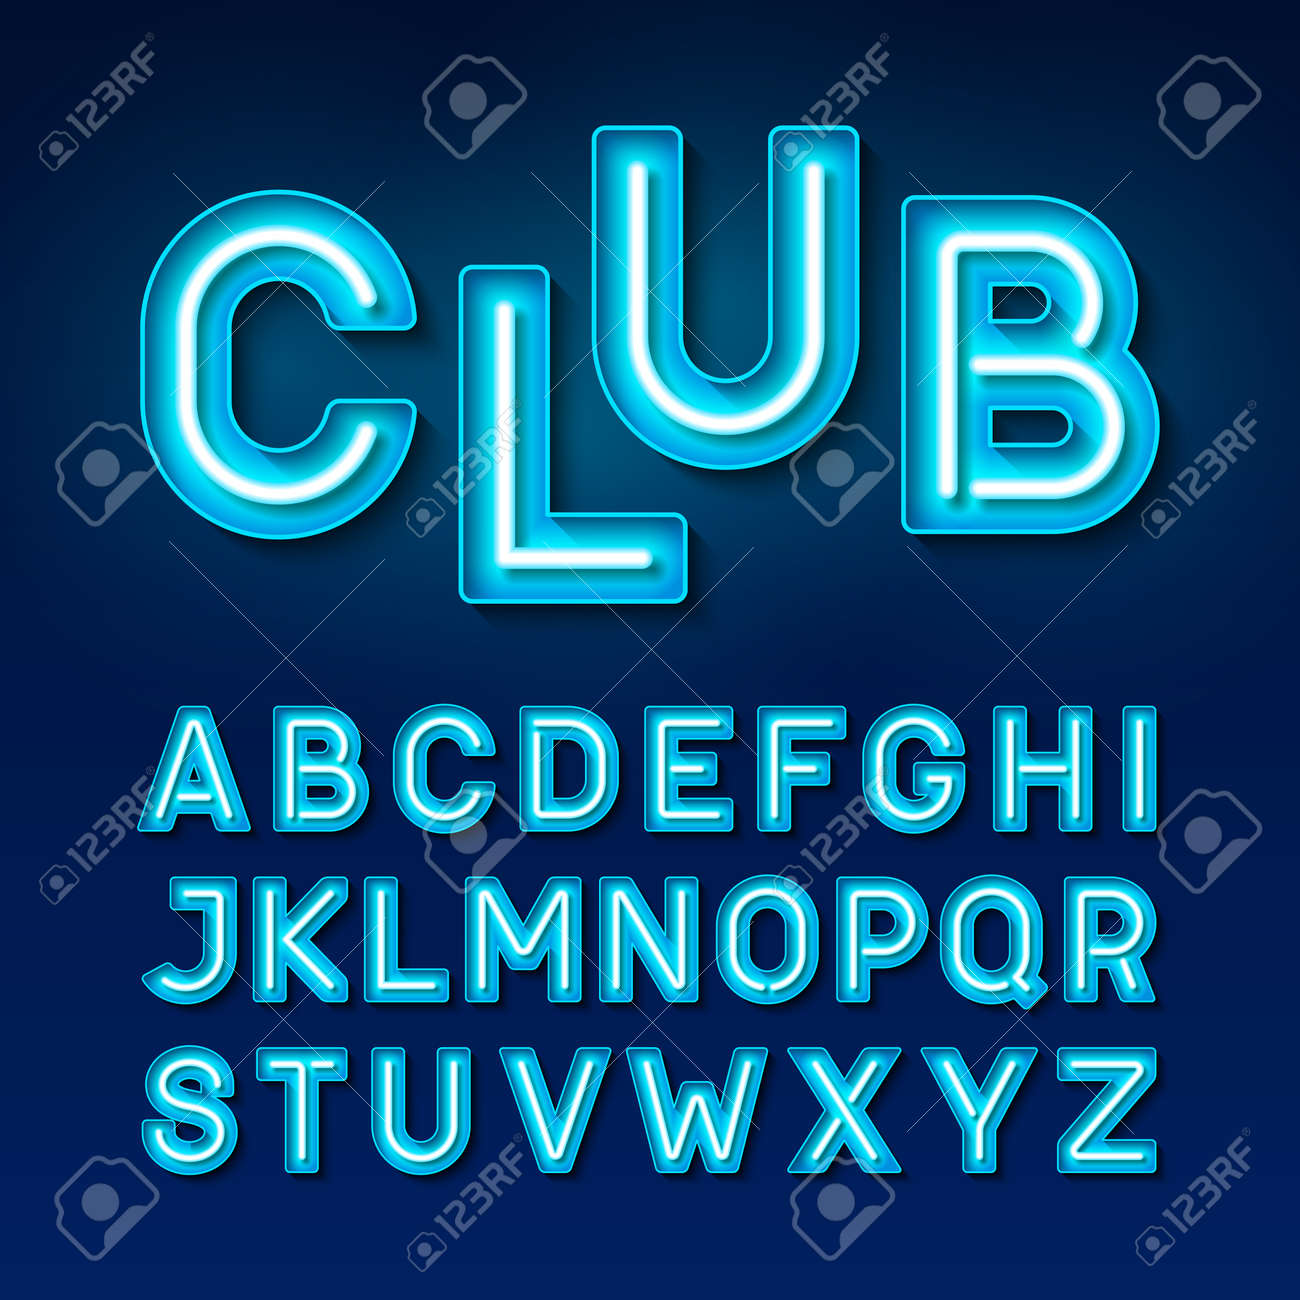 Broadway Night Club Vintage Style Neon Font Stock Vector